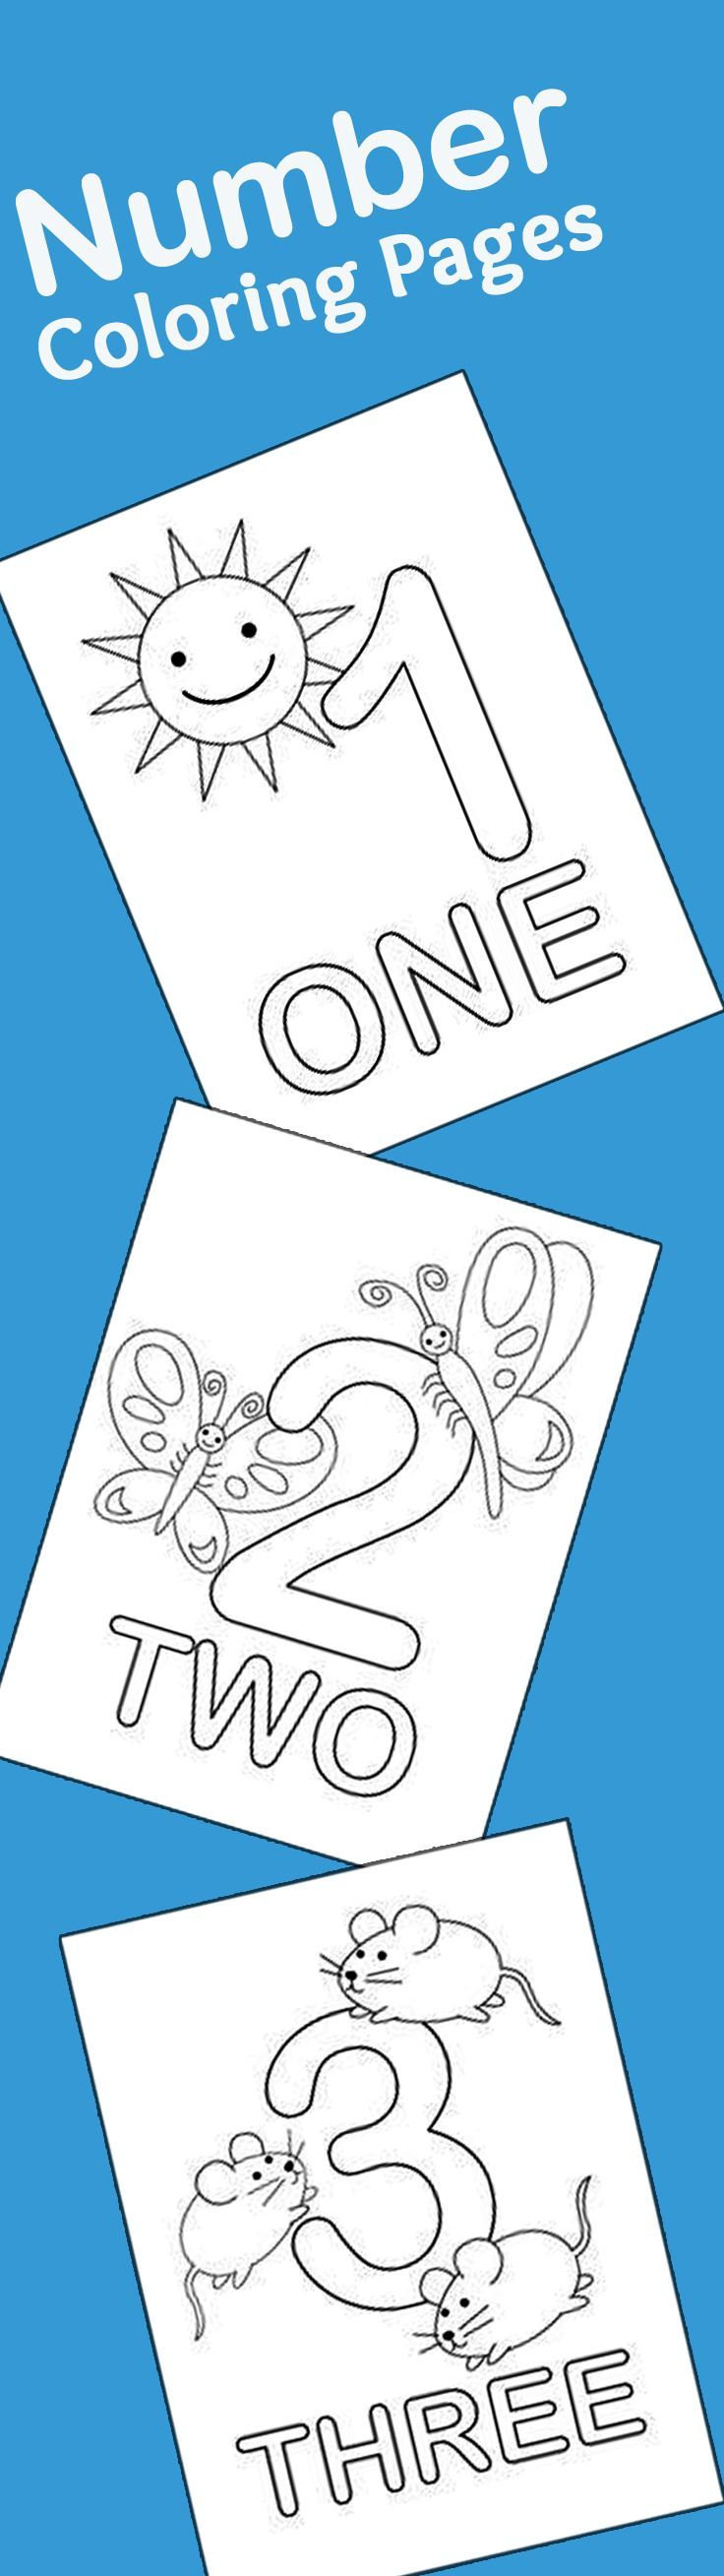 Top 21 Free Printable Number Coloring Pages Online in 2018 | For ...